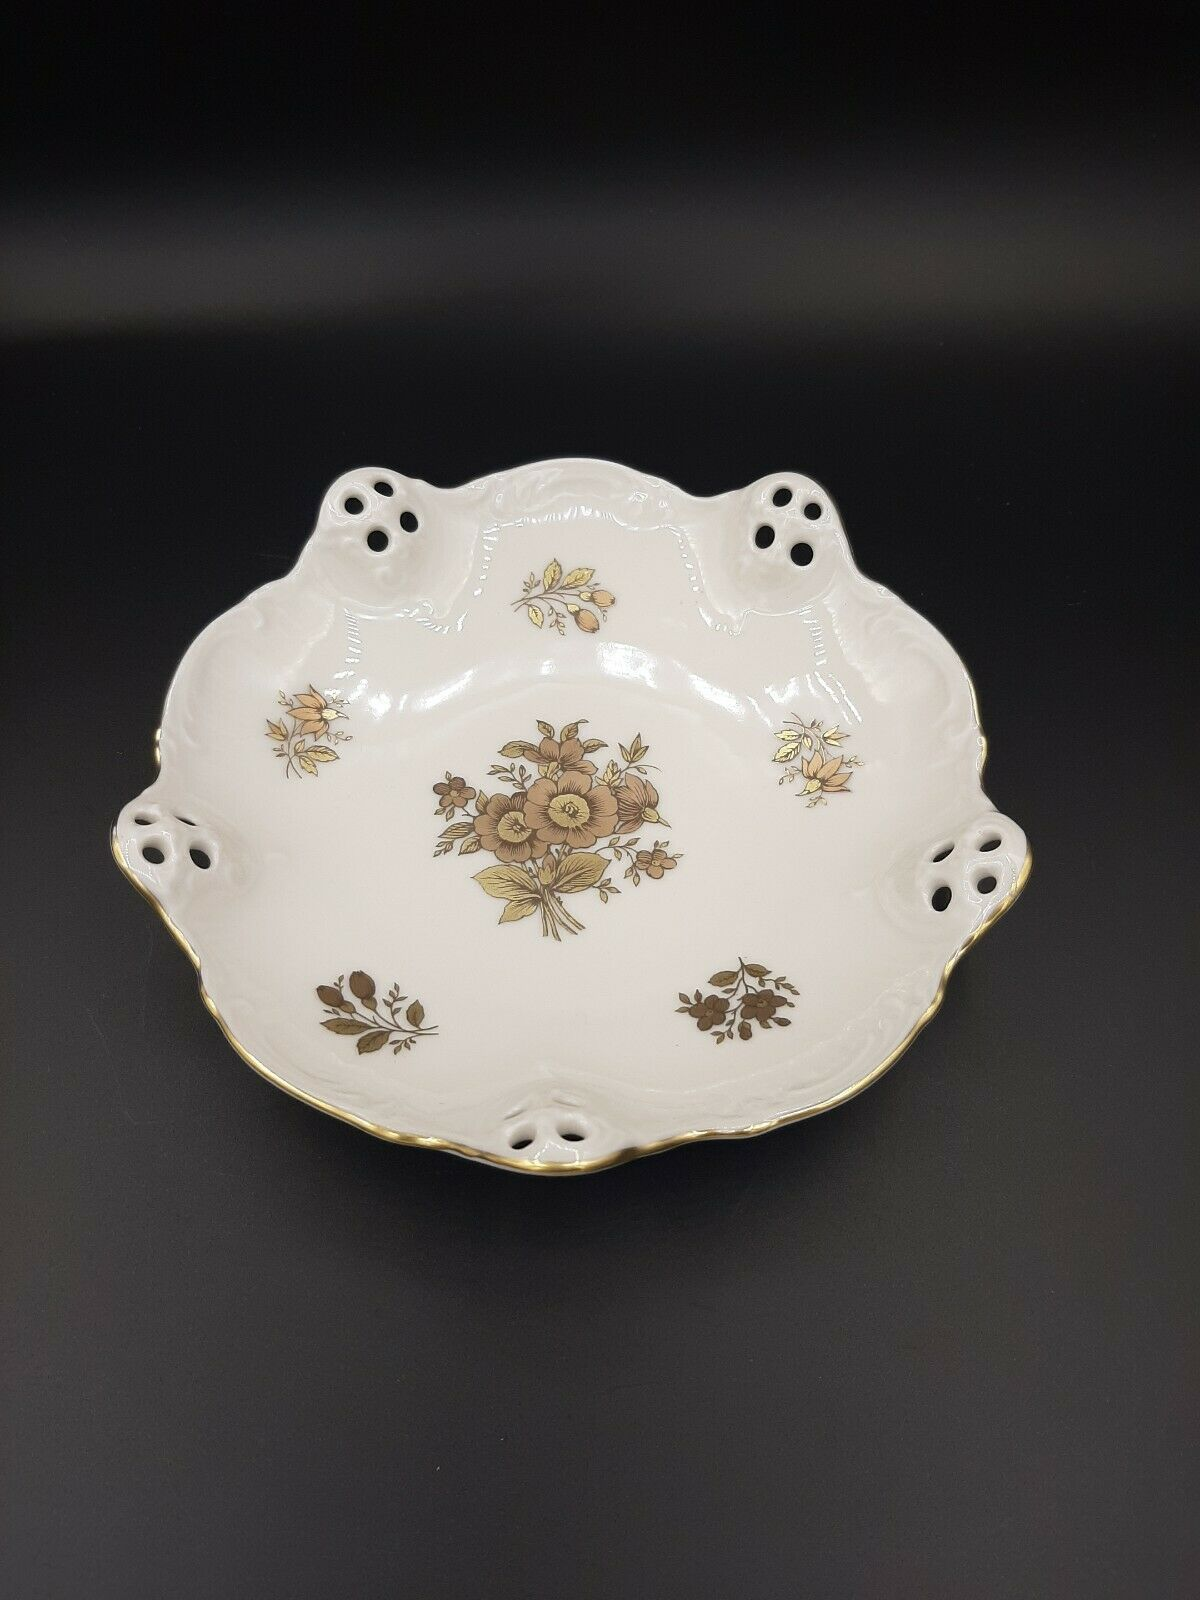 Primary image for Rosenthal Group Germany, Classic Rose Collection Porcelain Dish